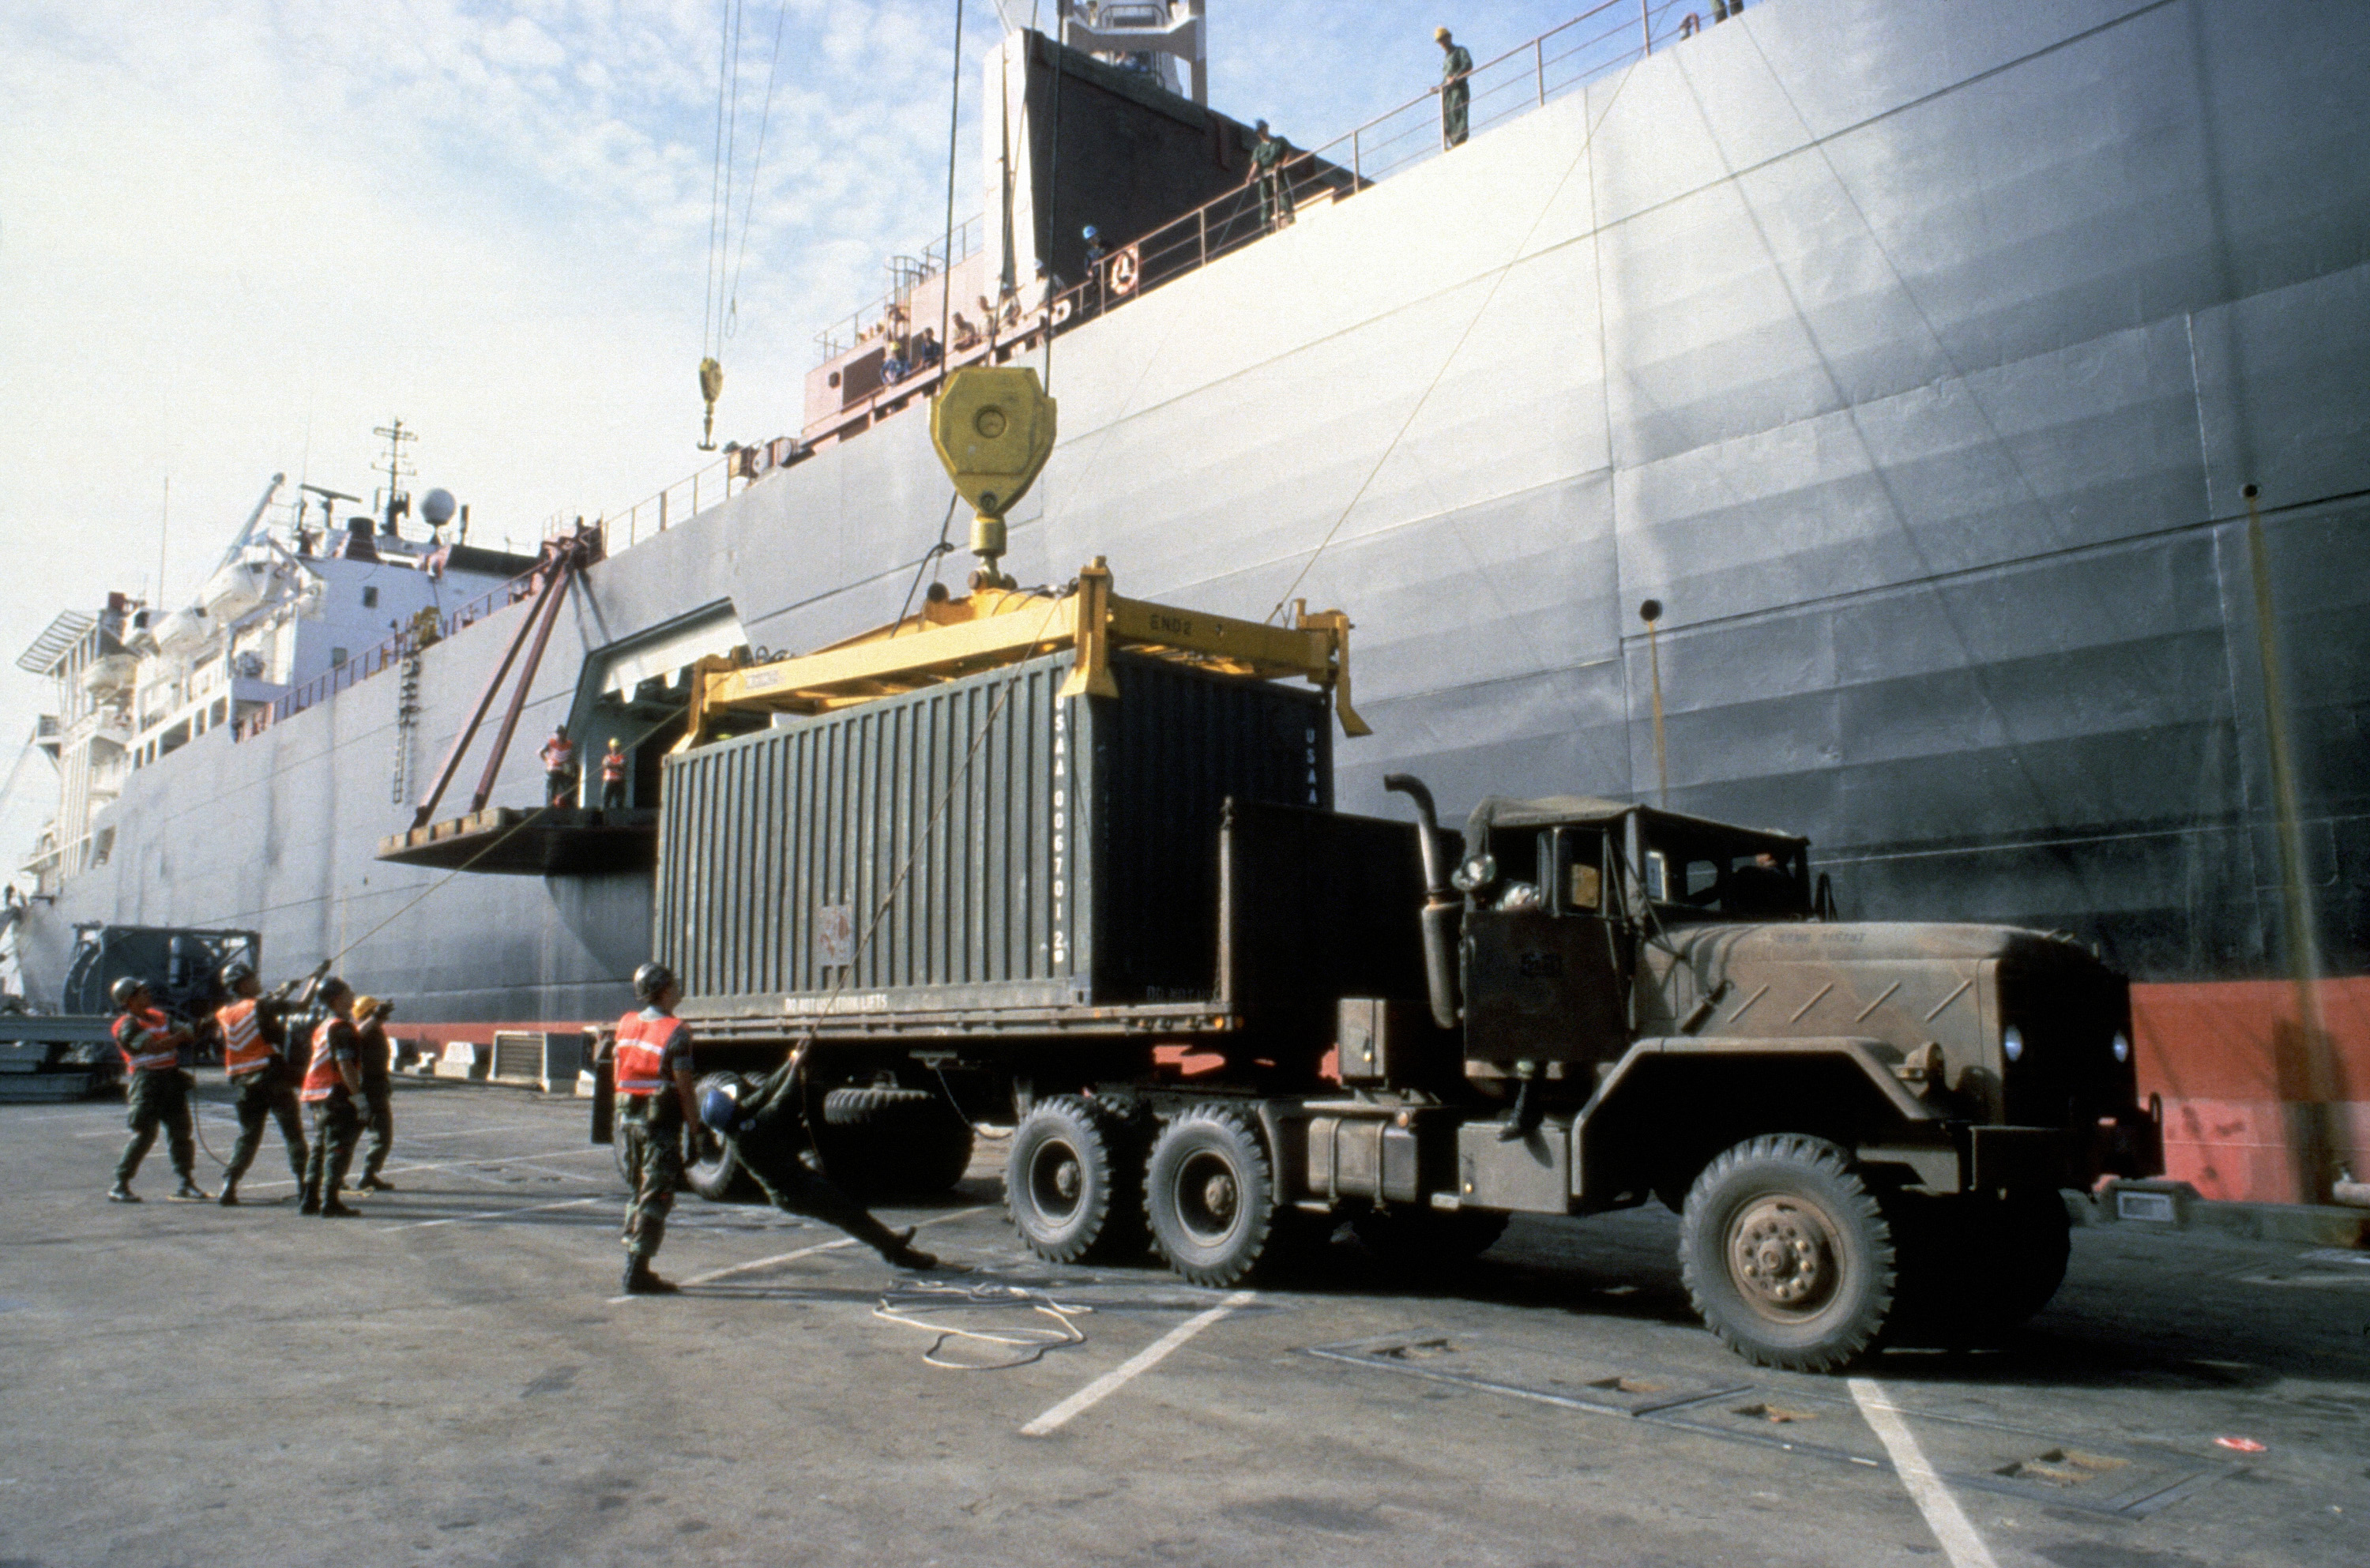 Containerized cargo of the 6th Marine Amphibious Brigade is loaded aboard the Maersk class maritime prepositioning ship SS CPL. LOUIS J. HAUGE JR. The container is being lifted from a trailer towed by an M931 5-ton tractor